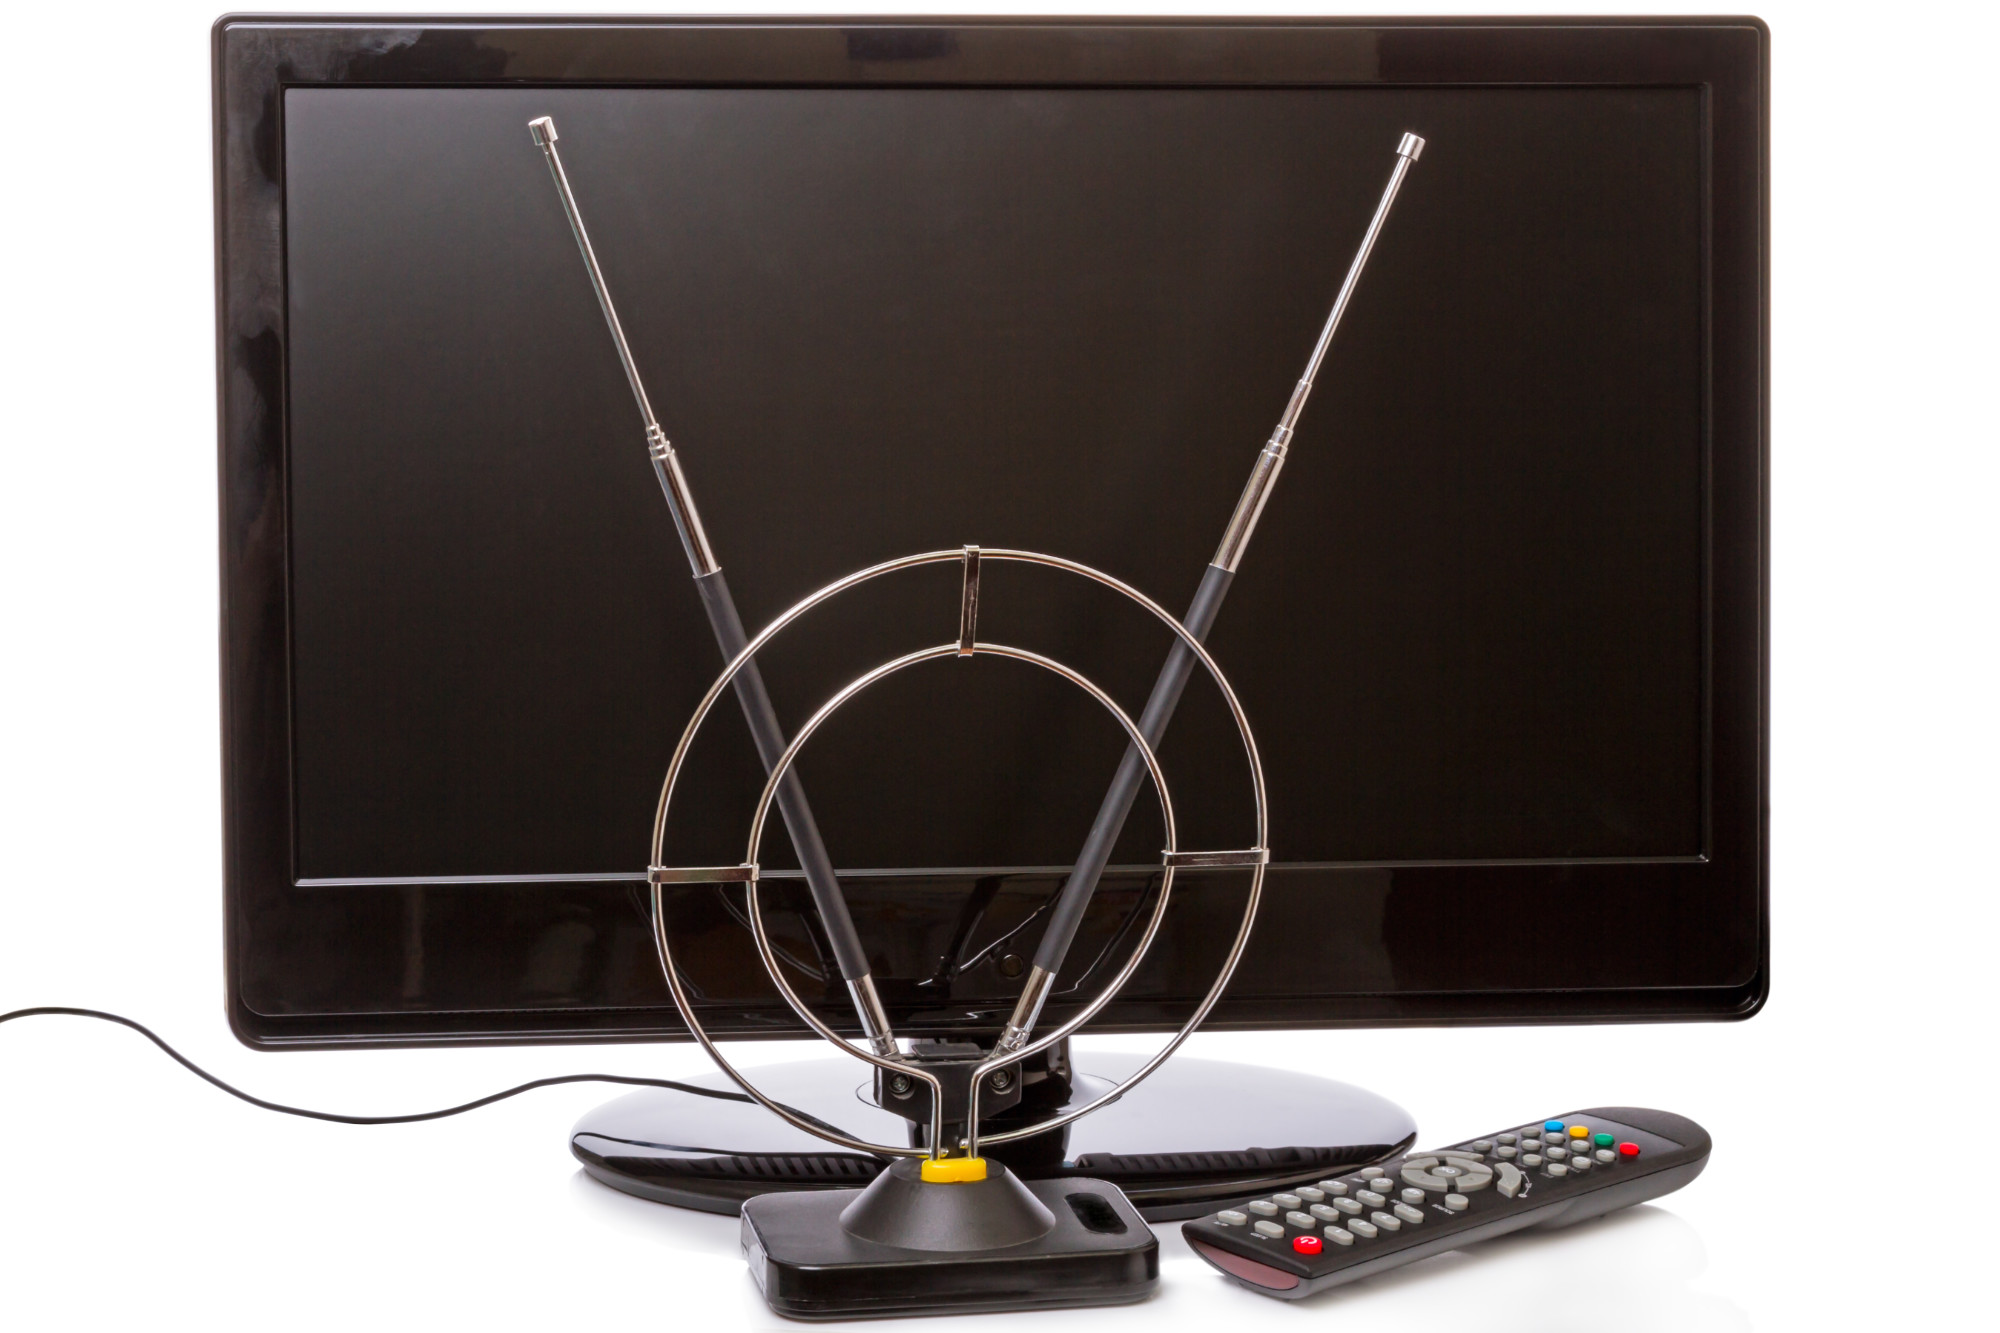 How Many Types of TV Antennas Are There?